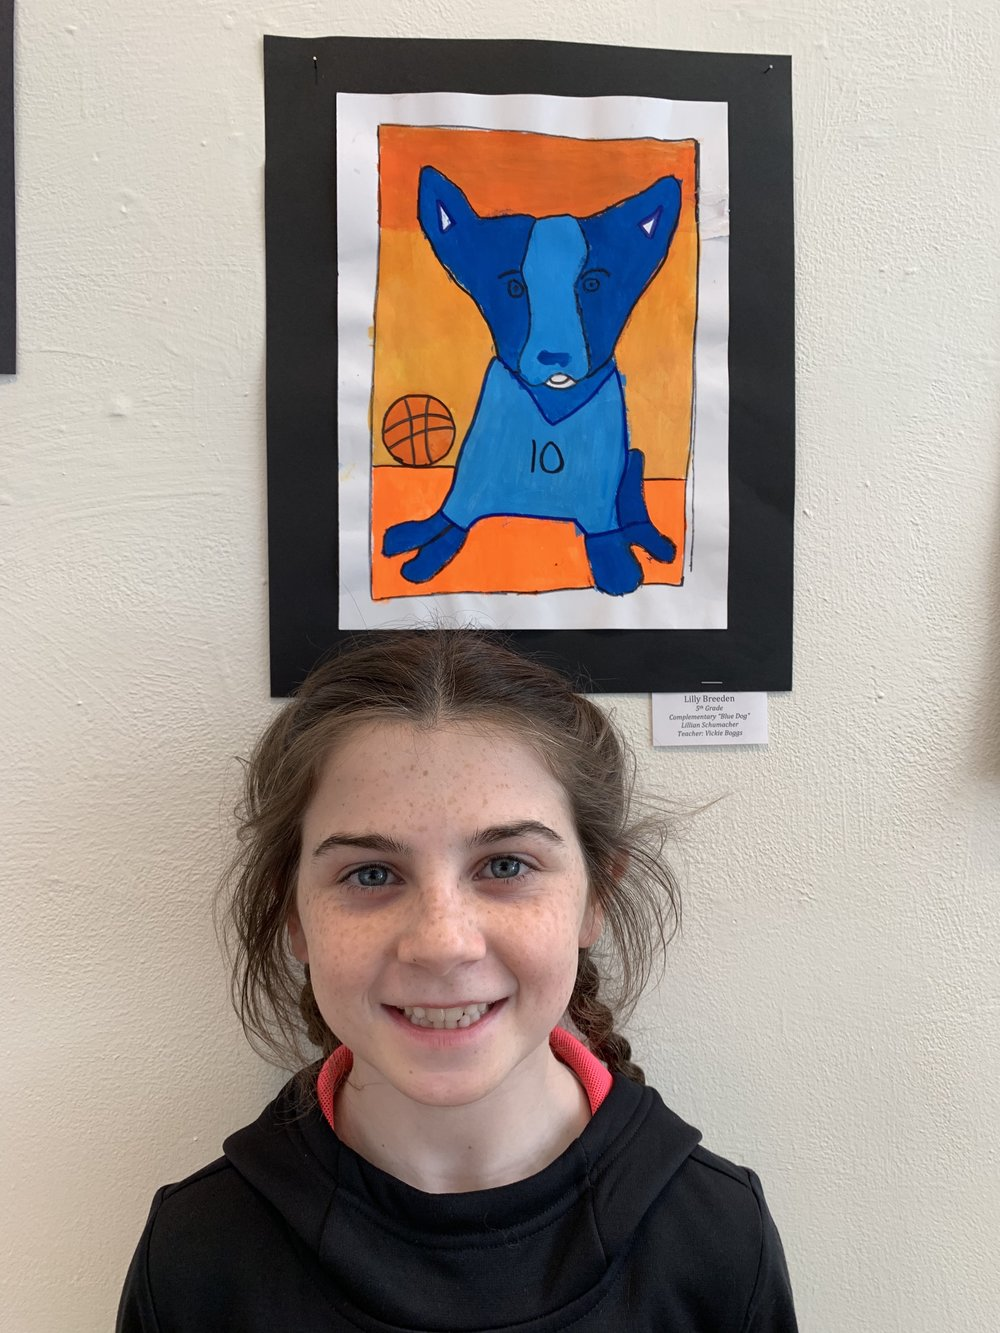 """Congratulations   to Lilly whose """"Blue Dog"""" was chosen for exhibition at the Stocksdale Art Gallery at William Jewell College. Lilly, is that Rosco? Blue and orange are GREAT complimentary colors. And I love the bit of white in his ears and mouth too. Is #10 your number? (My daughter's number was #10 too - in volleyball.)"""